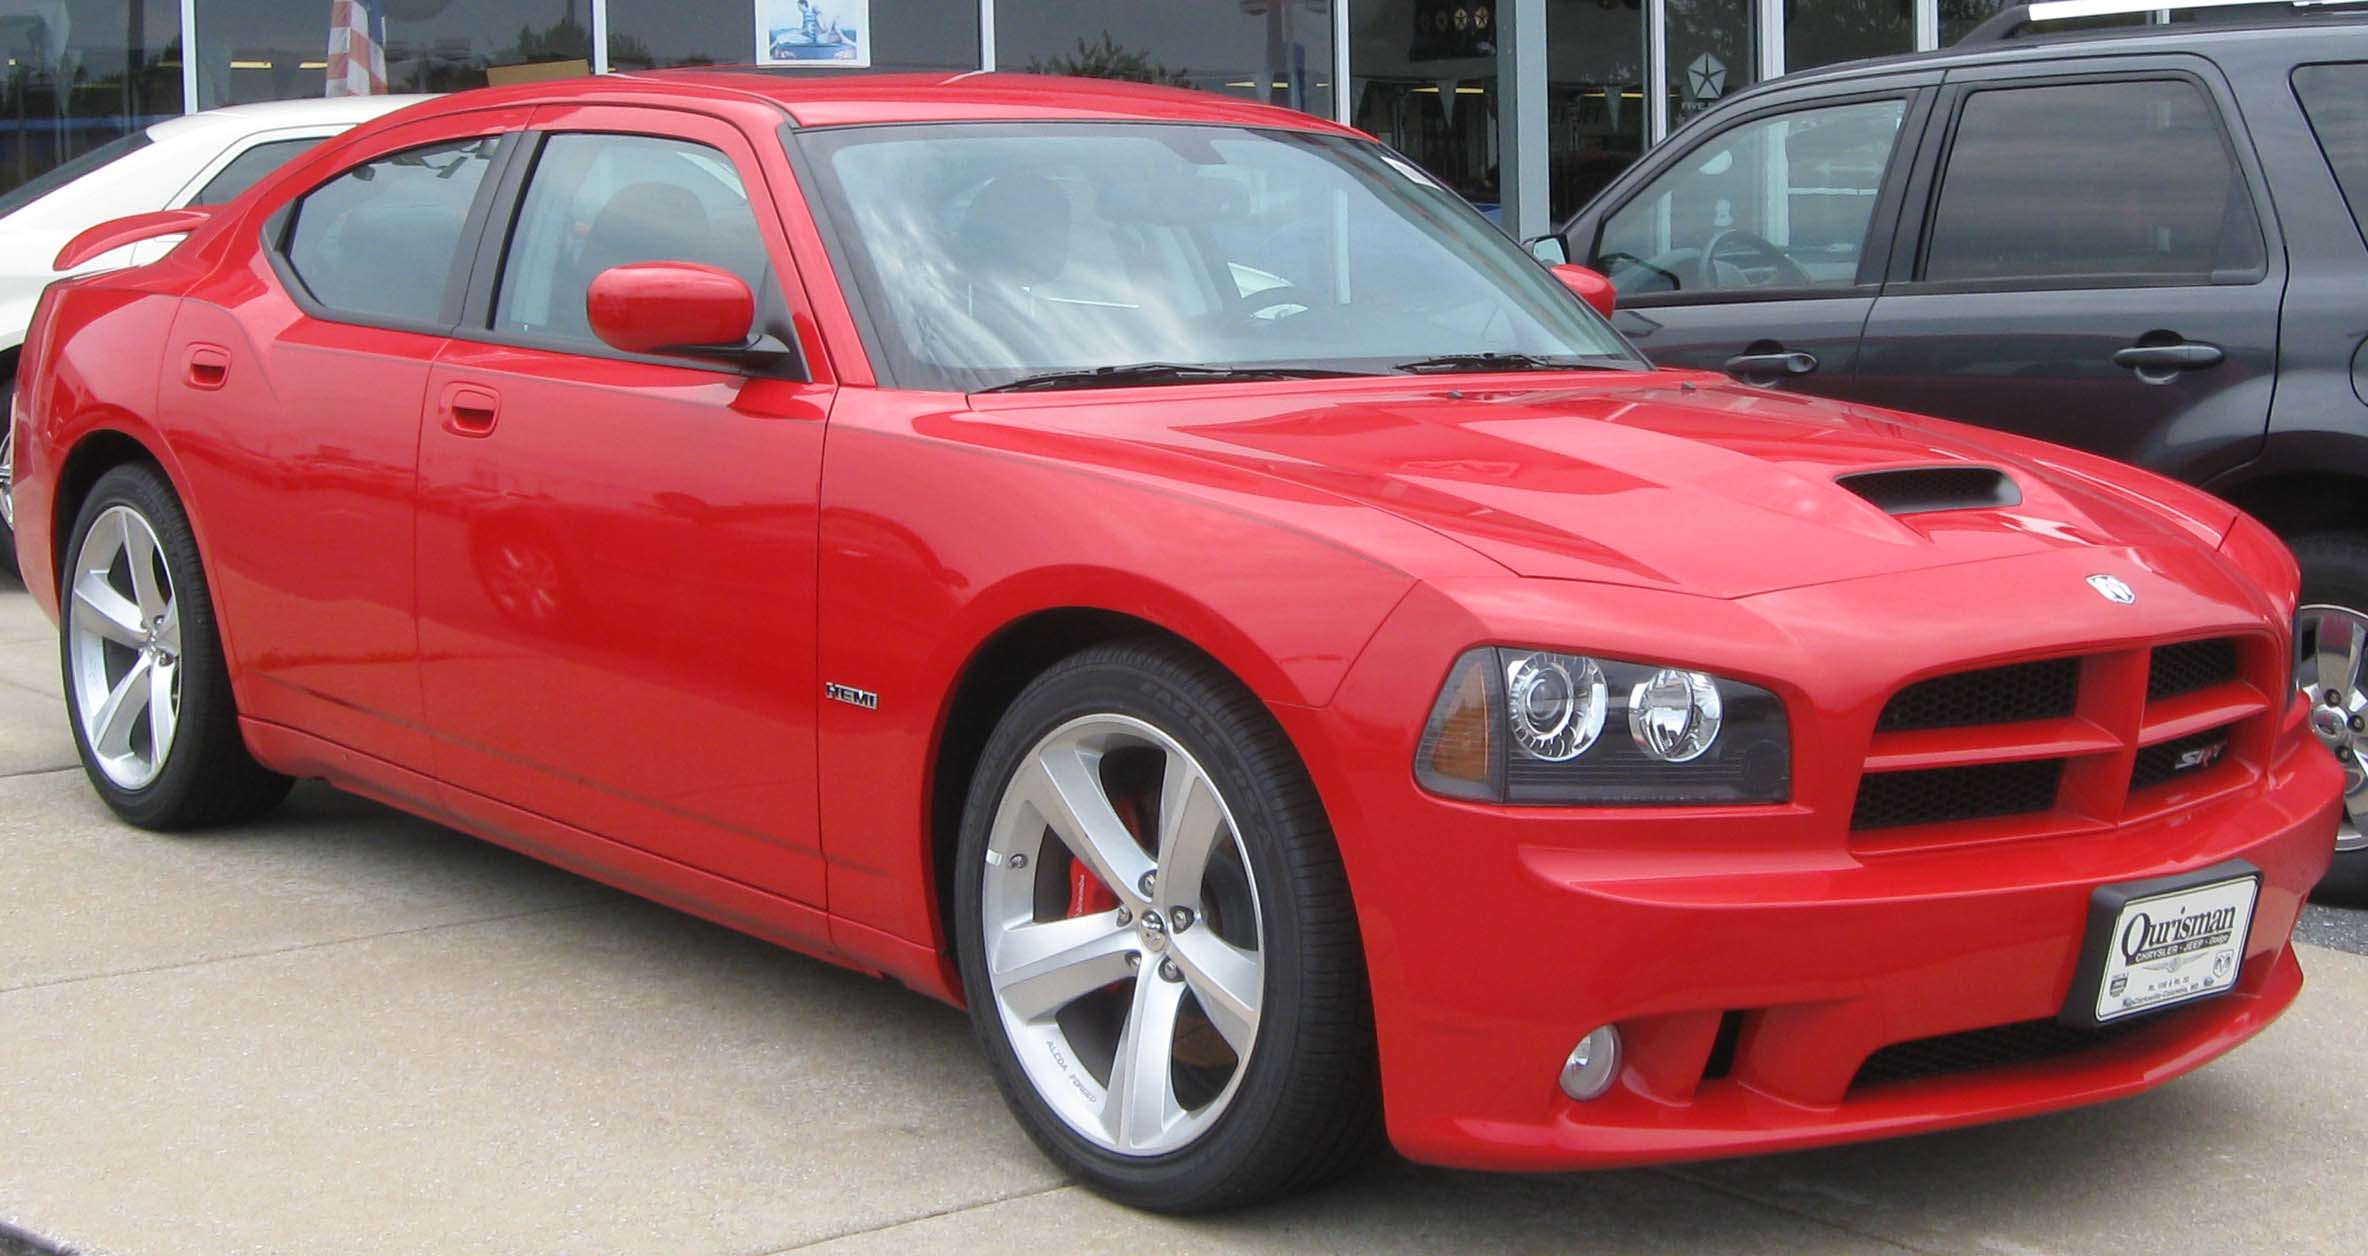 2010 Dodge Charger #9